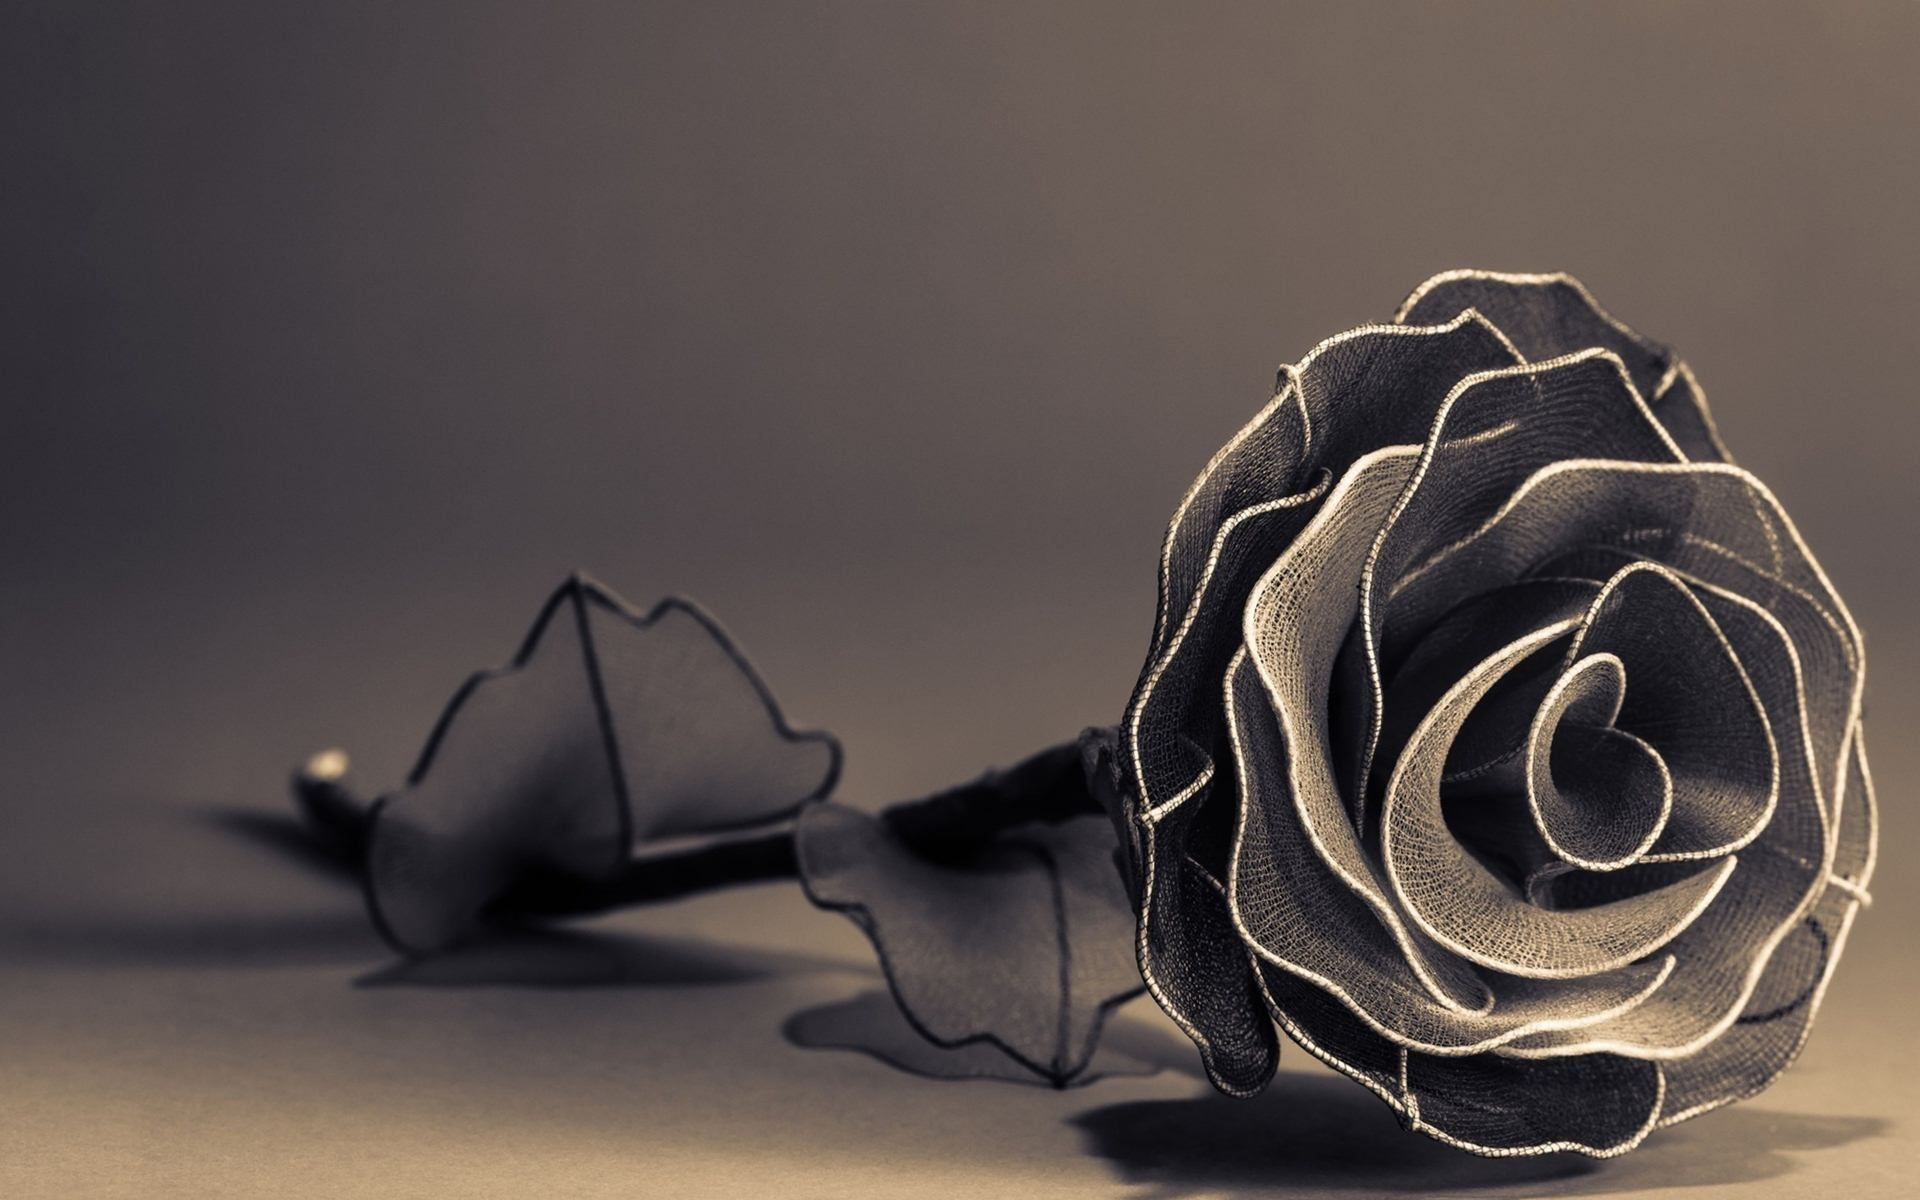 3d Black Rose Hd Wallpapers Blue Roses Wallpaper Rose Flower Wallpaper Black Rose Picture